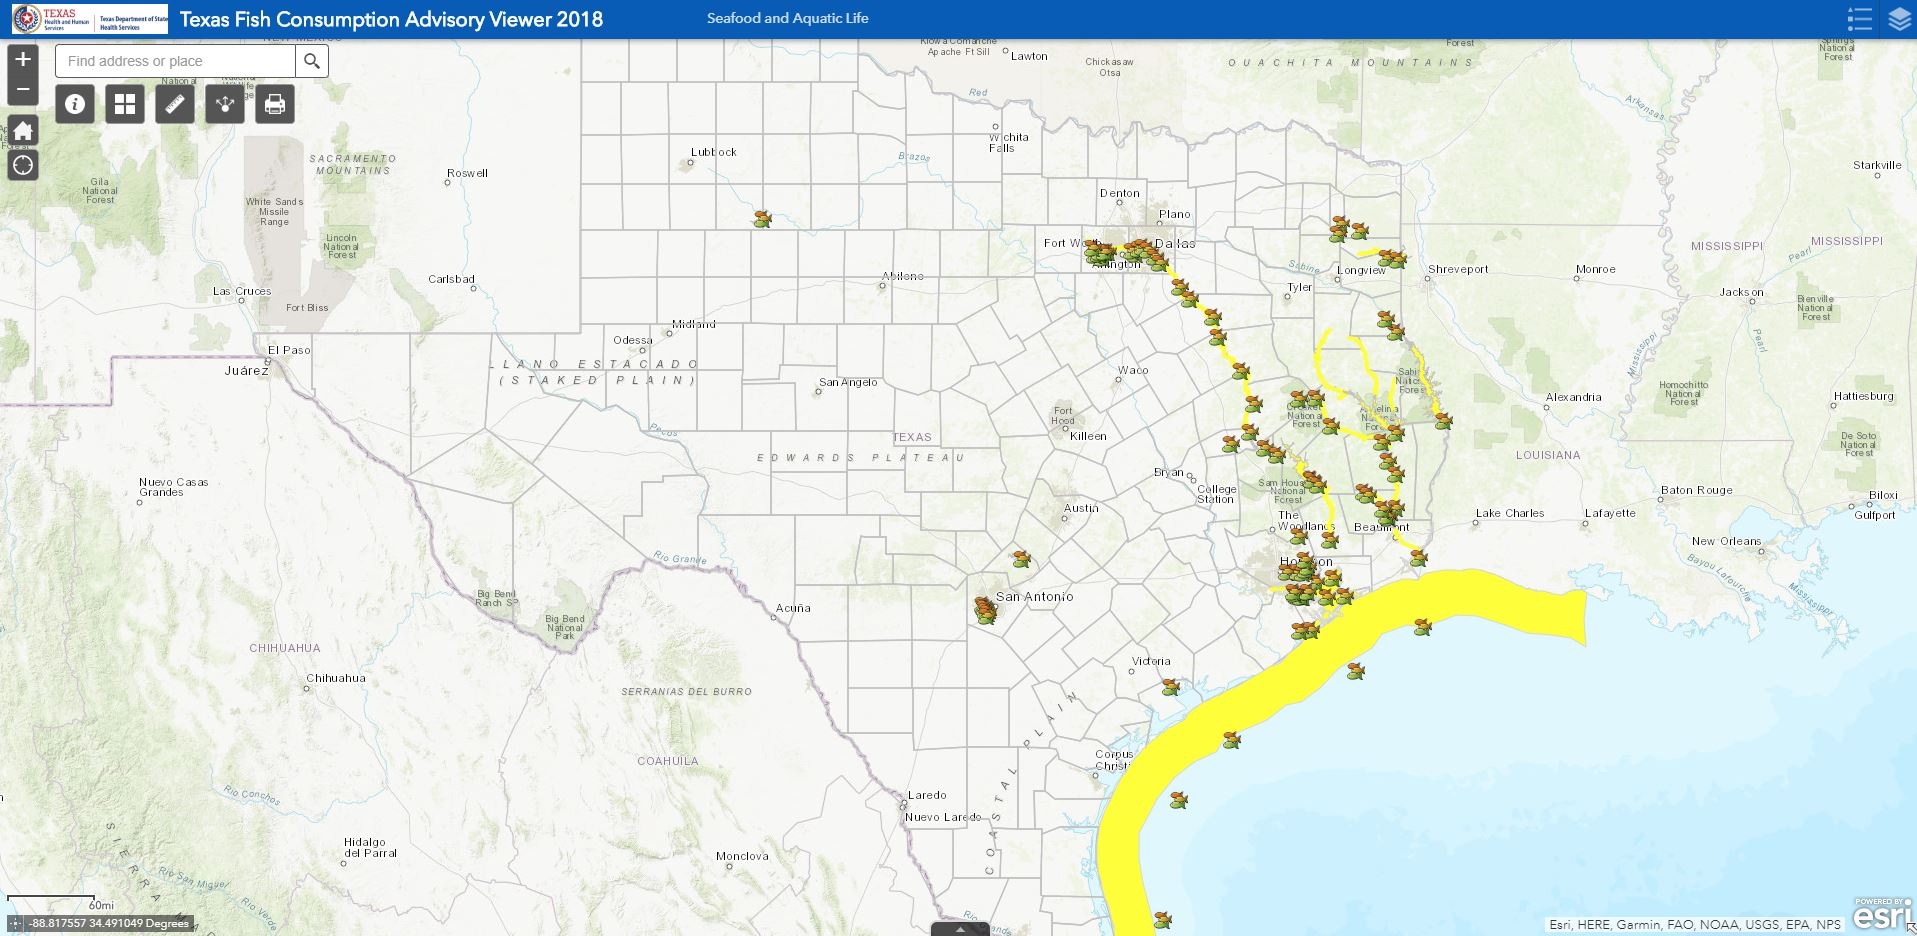 small preview snapshot of Texas Fish Consumption Advisory Viewer